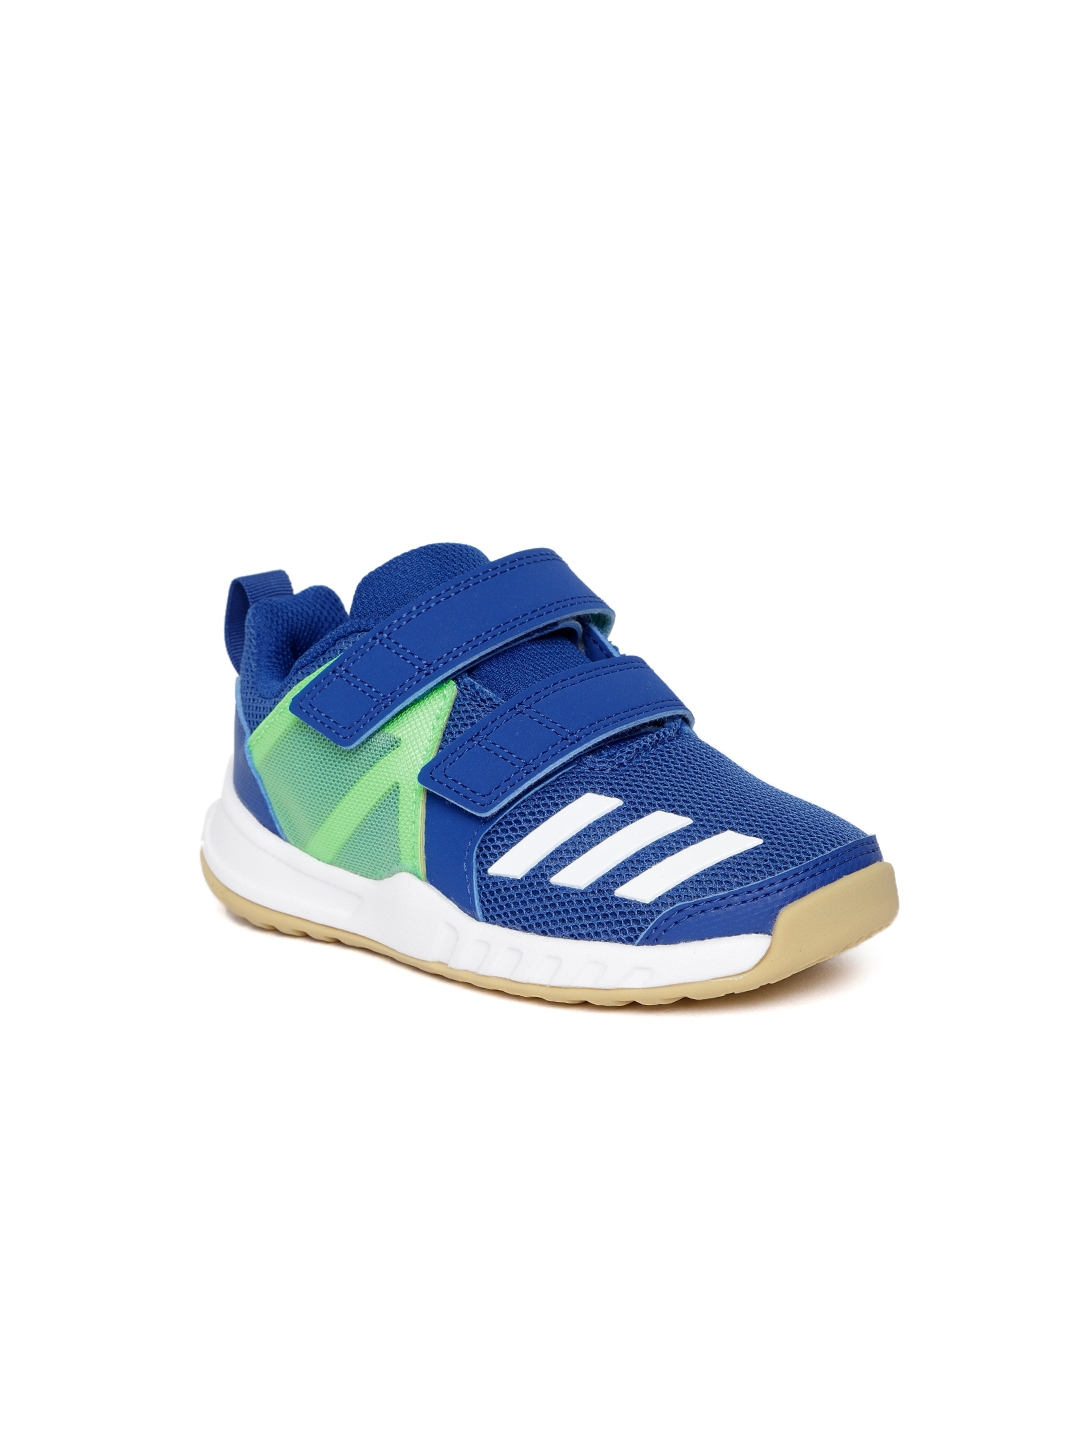 low priced 443e6 ddaf8 ADIDAS Kids Blue  Green FORTAGYM CF Training Shoes